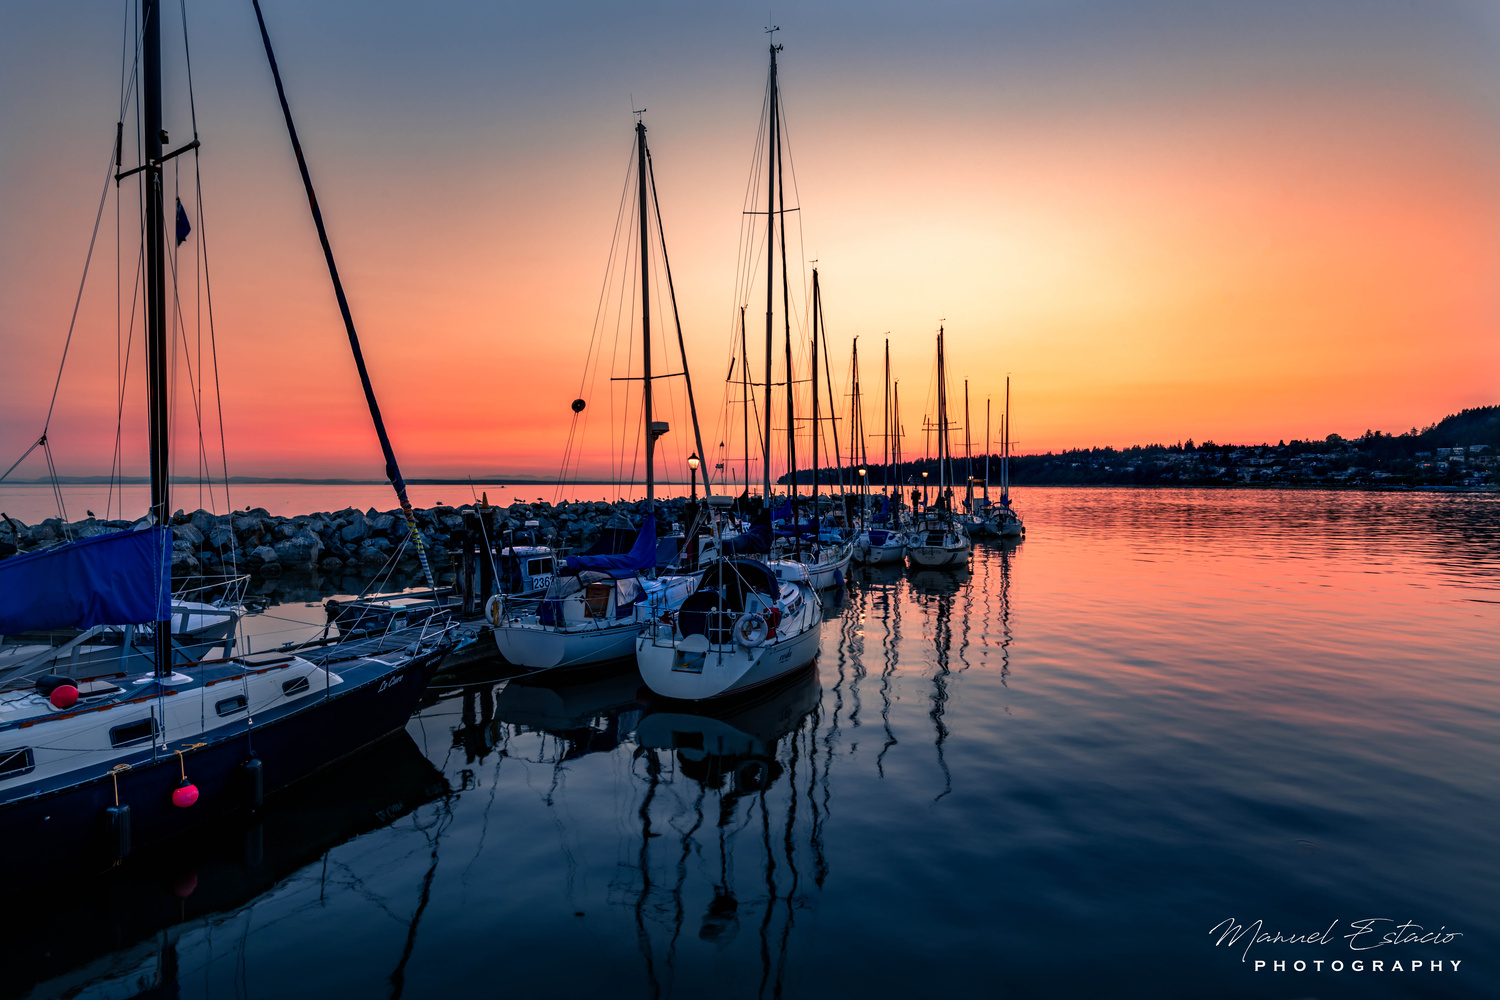 Sunset by the pier by Manuel Estacio